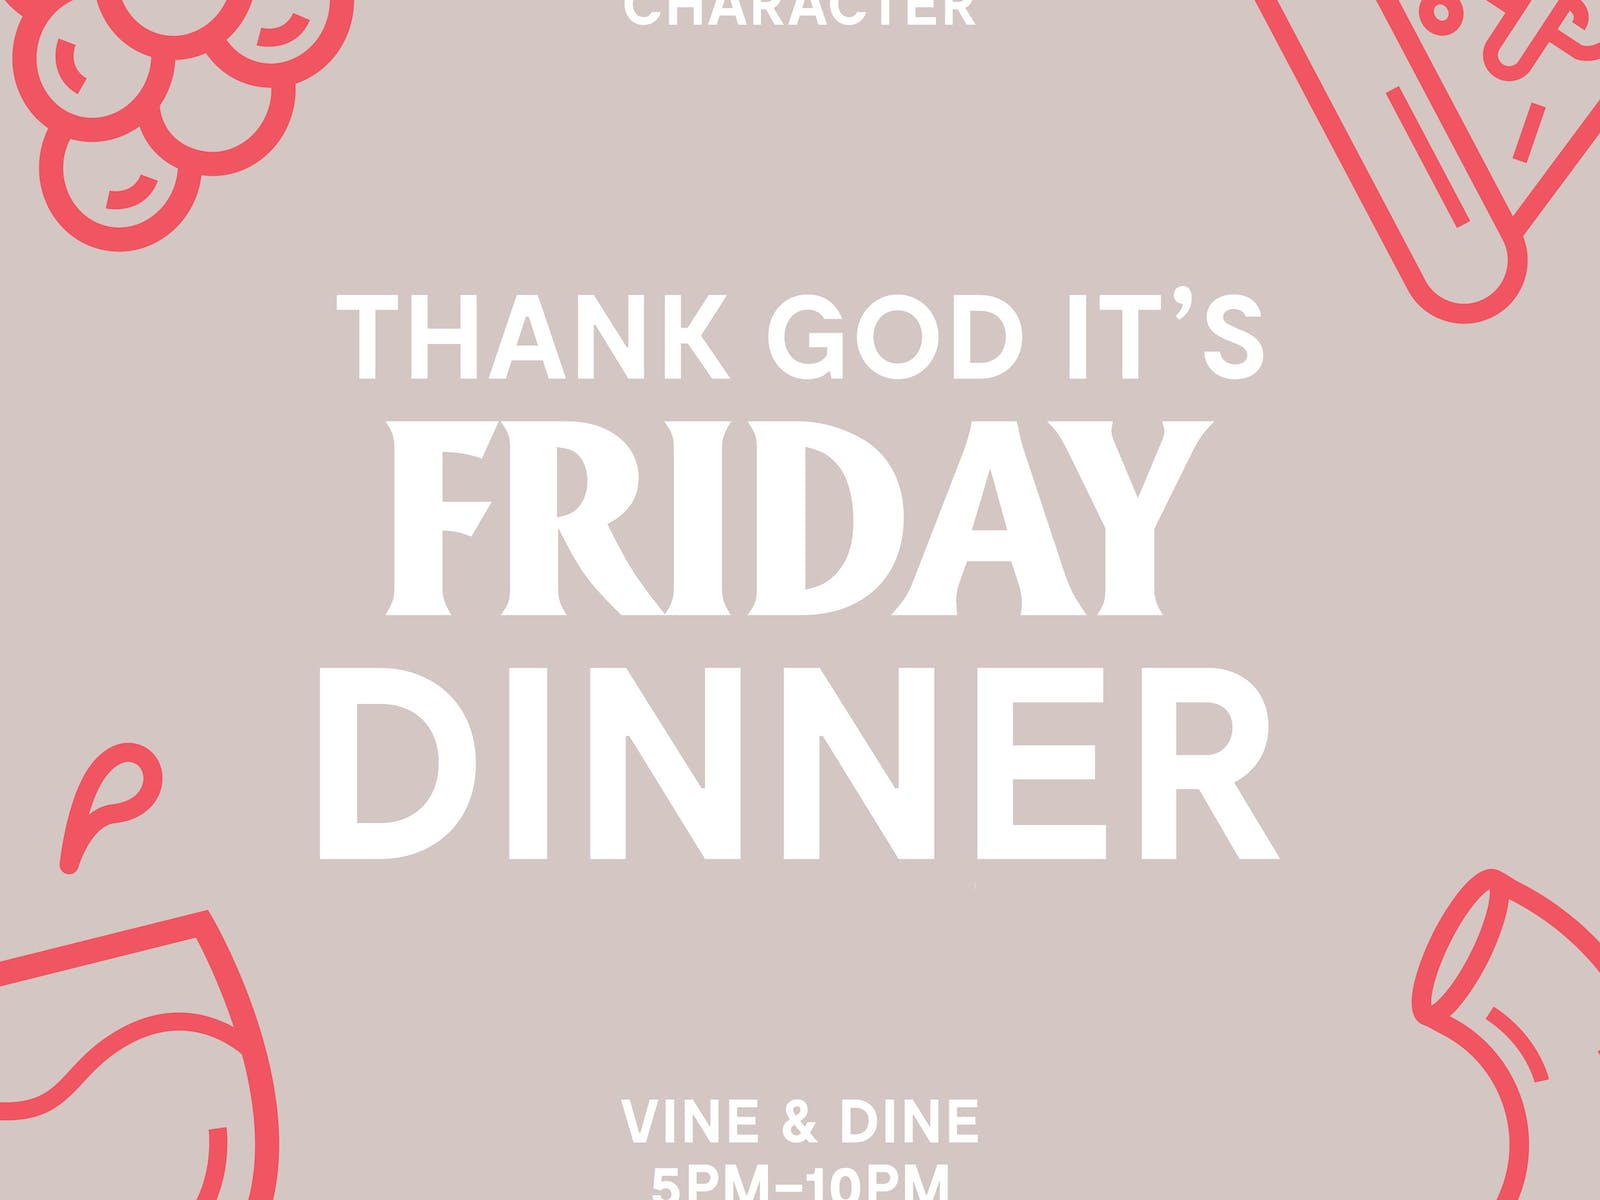 Image for Thank God It's Friday Dinner - Vine and Dine